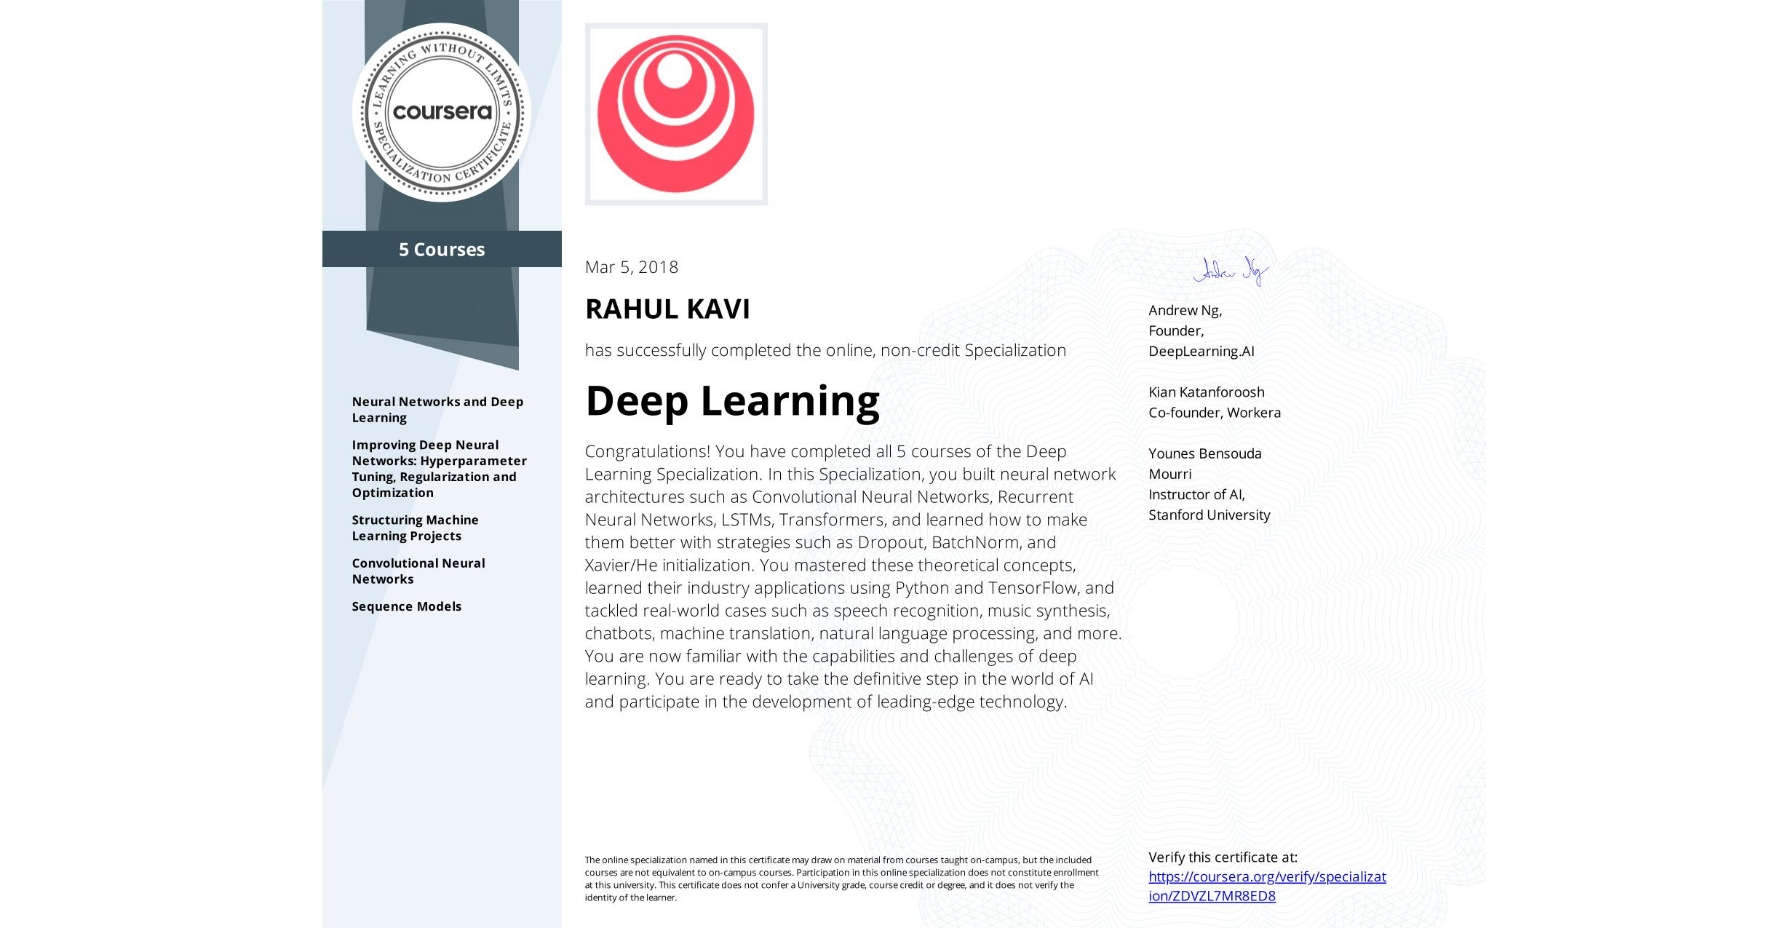 View certificate for RAHUL KAVI, Deep Learning, offered through Coursera. The Deep Learning Specialization is designed to prepare learners to participate in the development of cutting-edge AI technology, and to understand the capability, the challenges, and the consequences of the rise of deep learning. Through five interconnected courses, learners develop a profound knowledge of the hottest AI algorithms, mastering deep learning from its foundations (neural networks) to its industry applications (Computer Vision, Natural Language Processing, Speech Recognition, etc.).